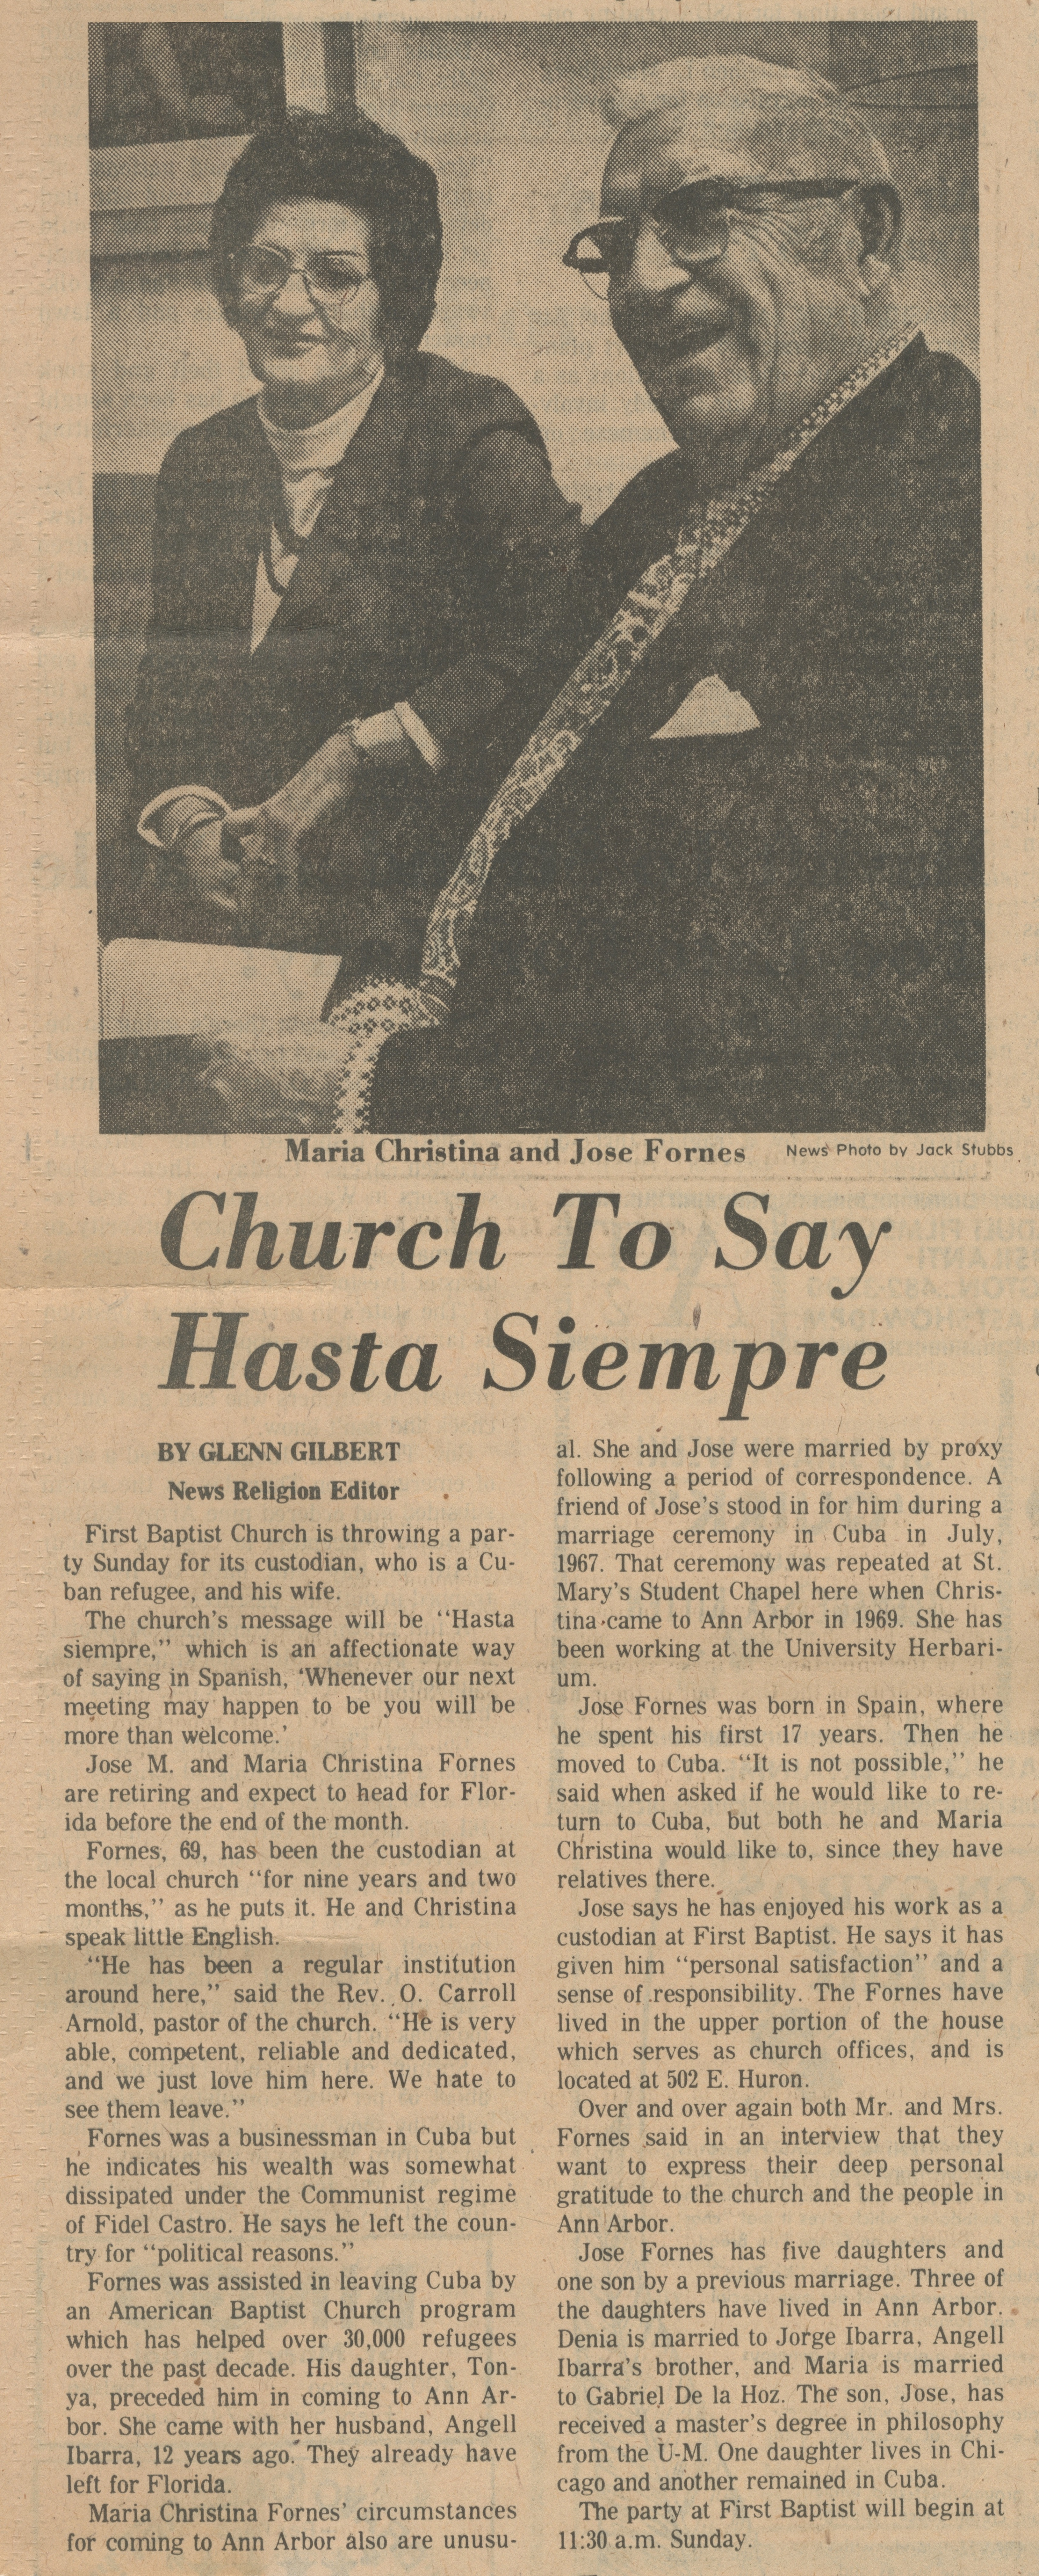 Church To Say Hasta Siempre image